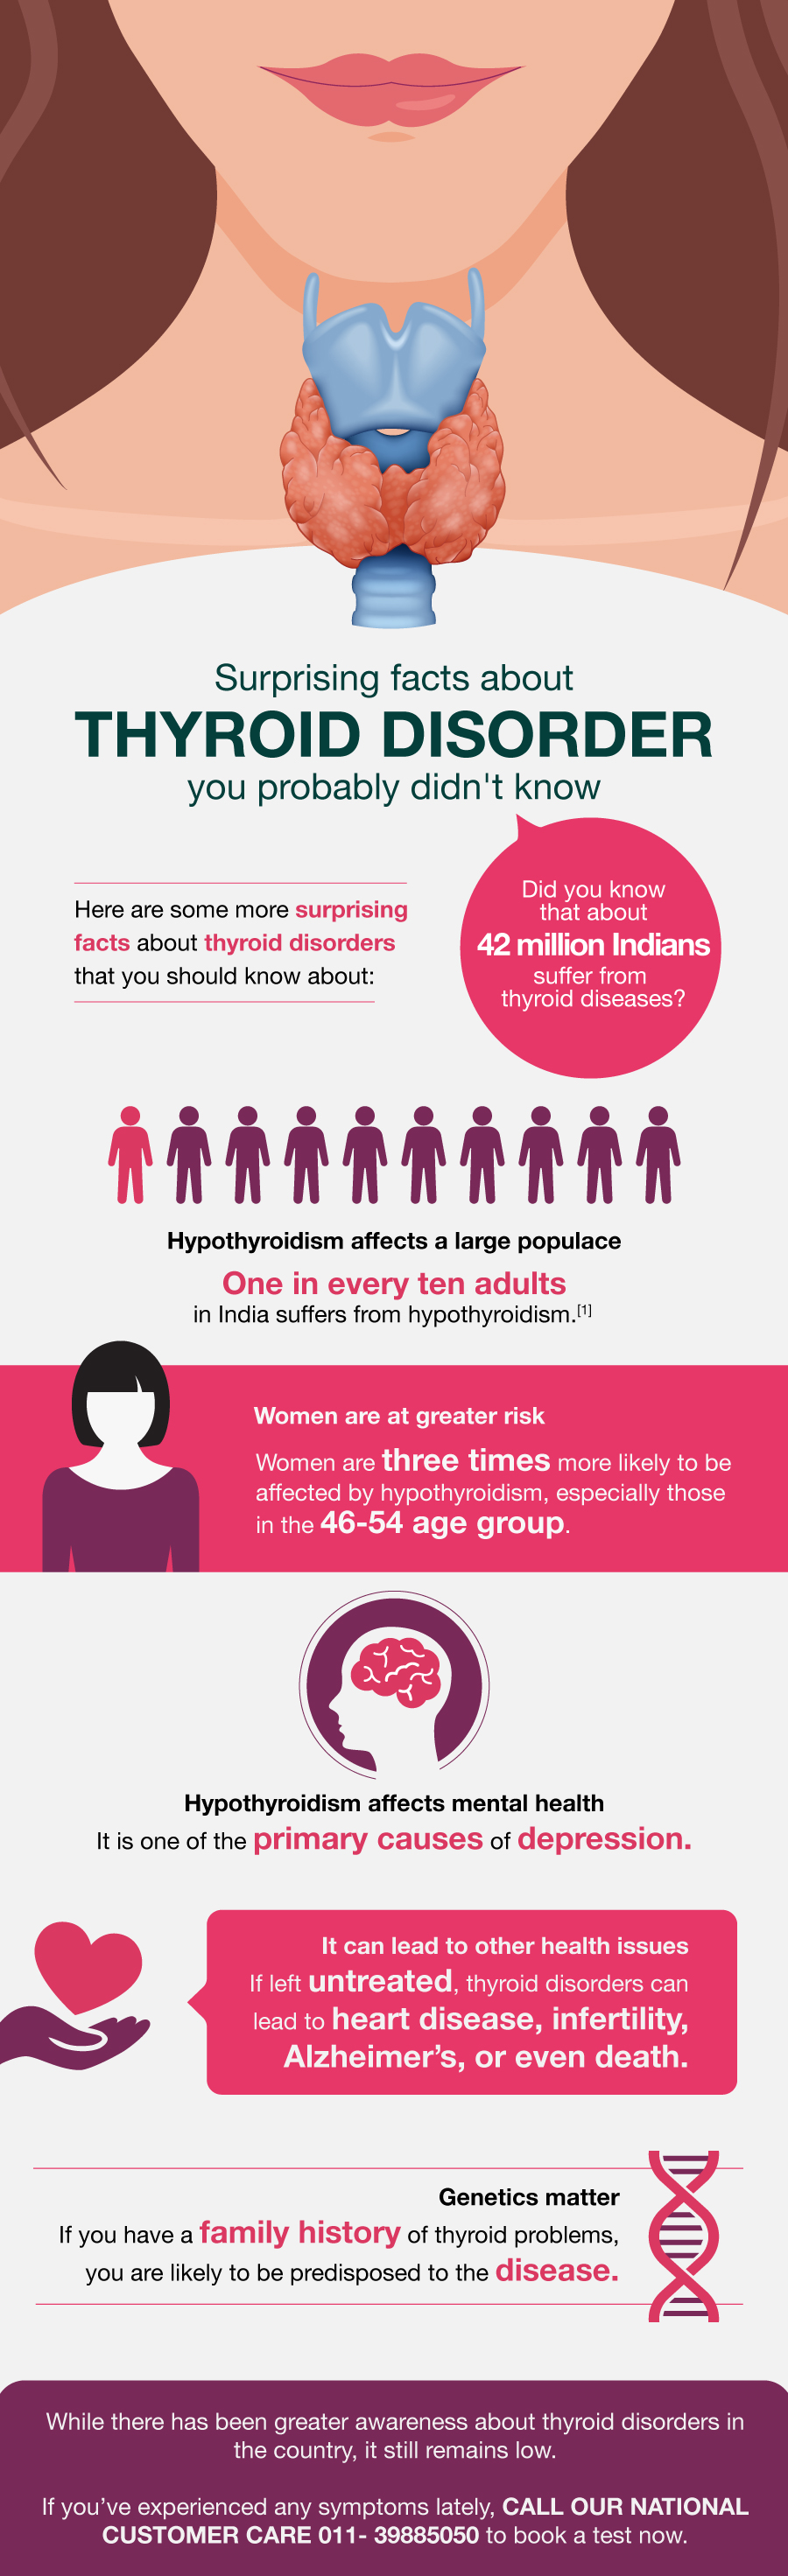 Surprising Facts about Thyroid Disorder